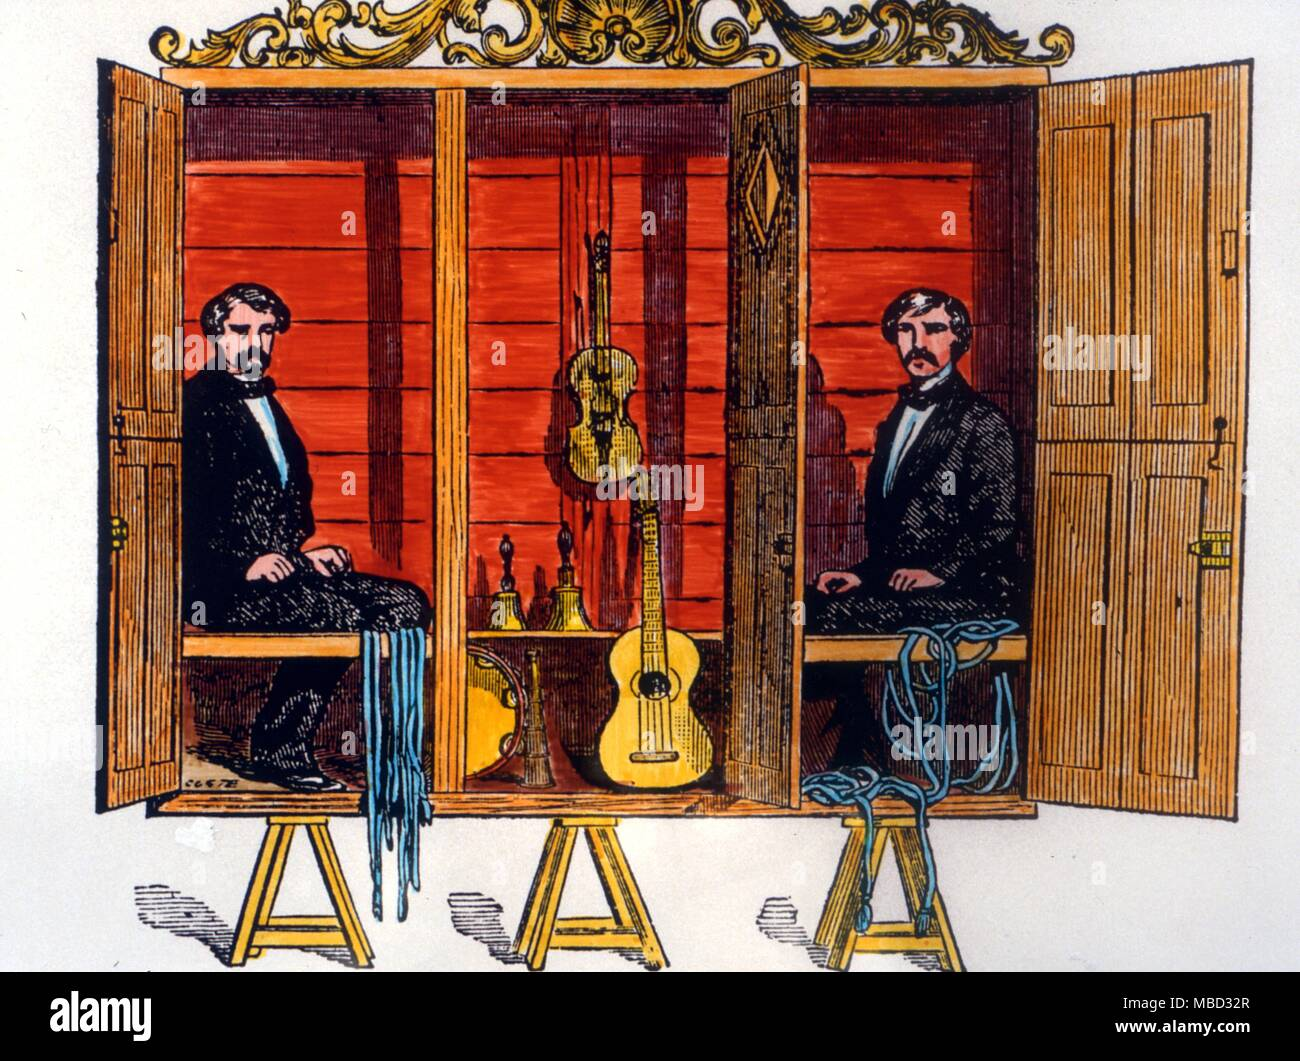 Stage Magic - The Davenports.  William Henry (died 1877) and Ira Davenport (died 1911) were brothers who began a medium-like stage show in 1859.  They never claimed to be genuine mediums, but their act was widely imitated on the Victorian stage and at seances. - Stock Image